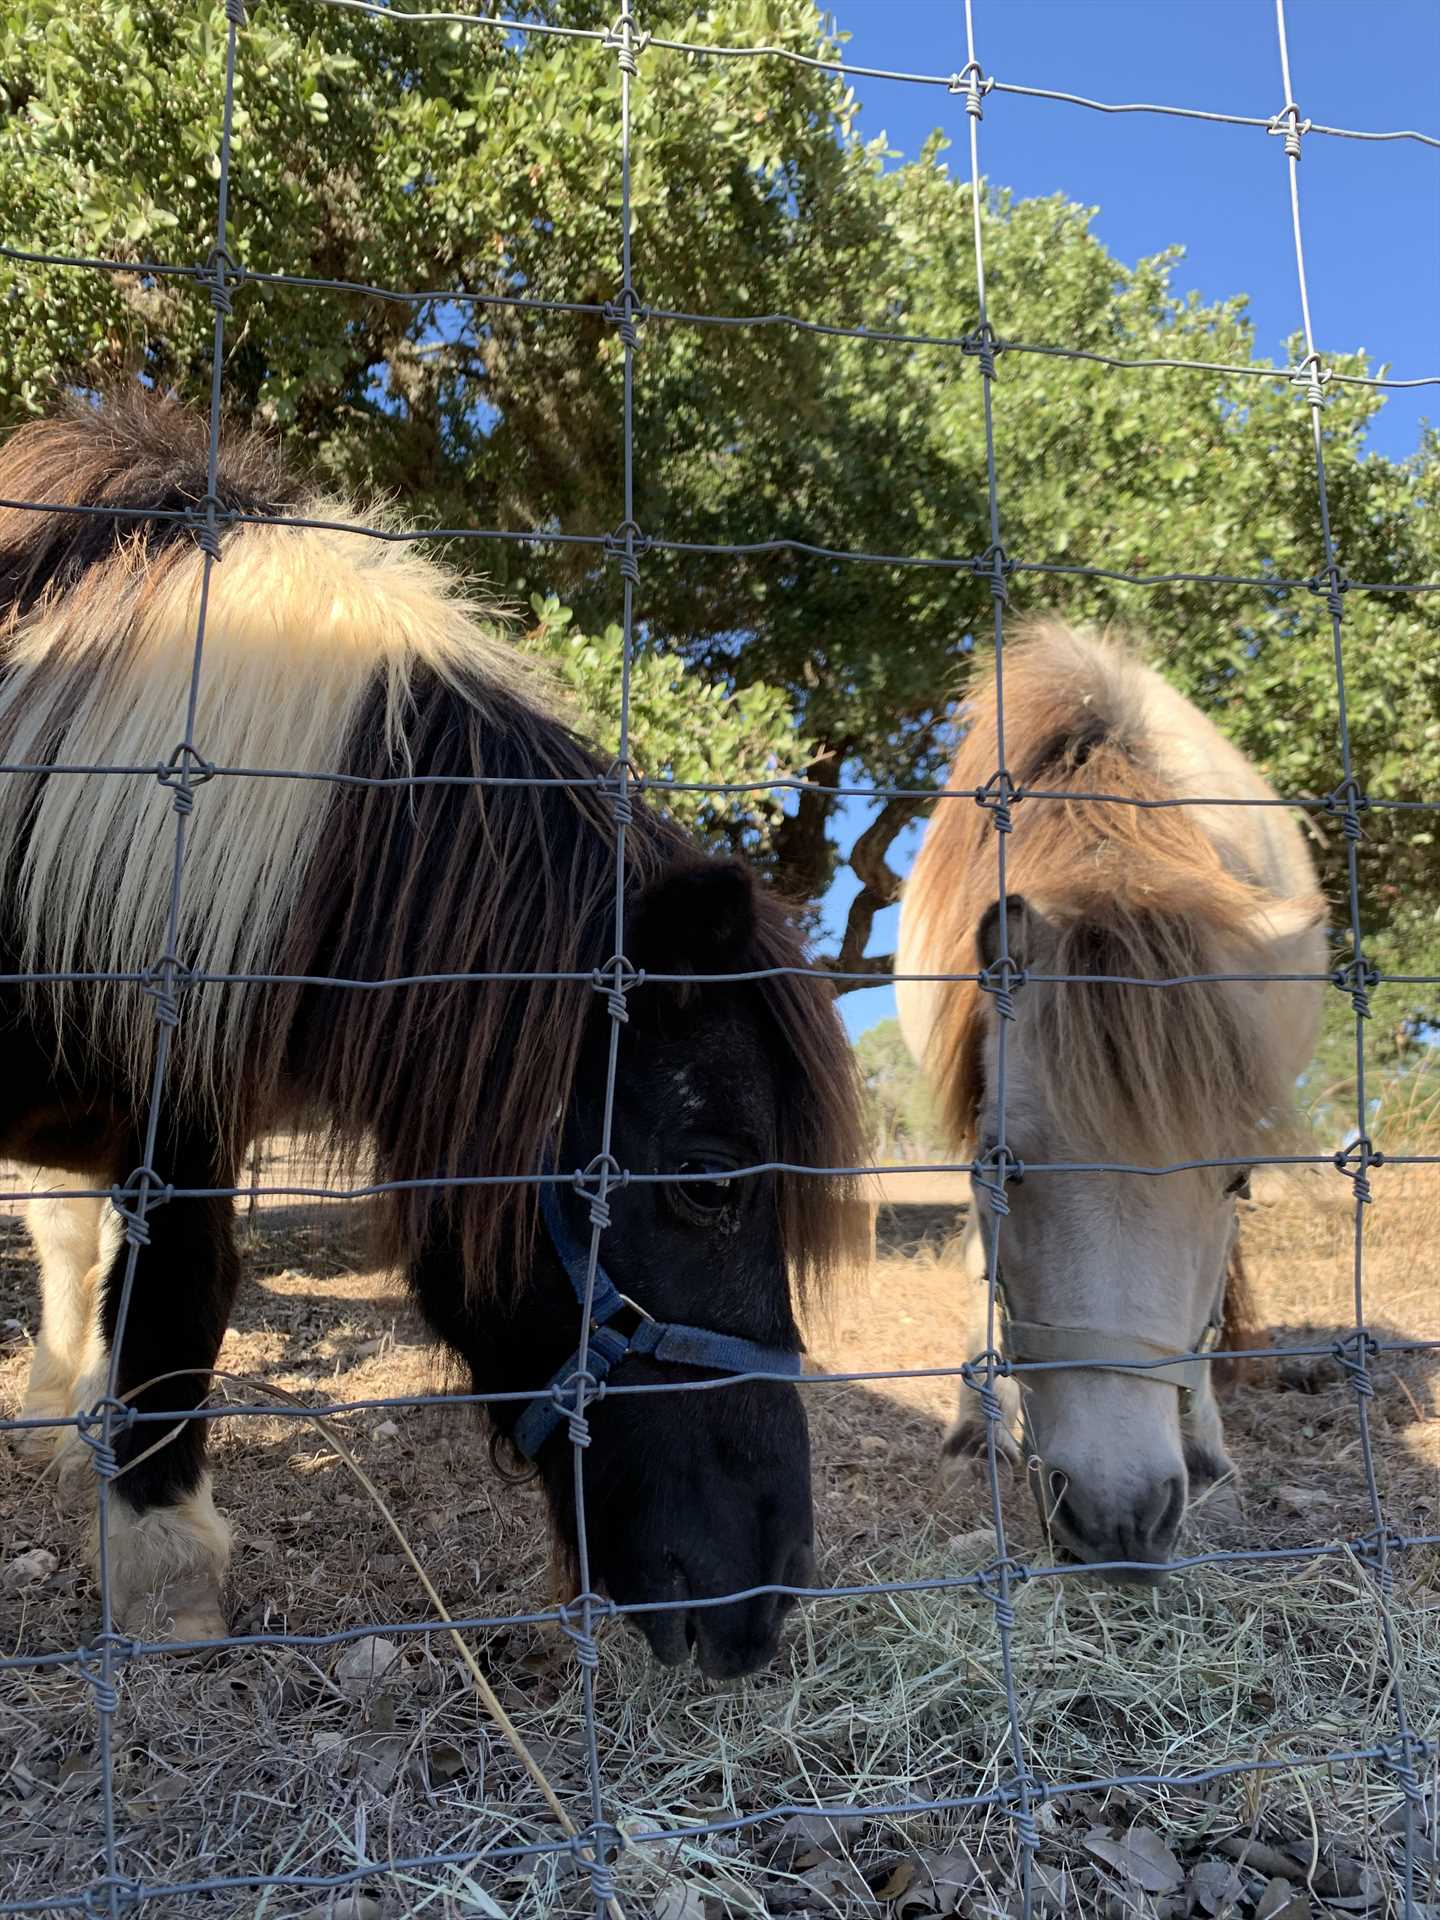 Buttercup and Jelly Bean are the photogenic miniature horses at Tabasco Ranch.